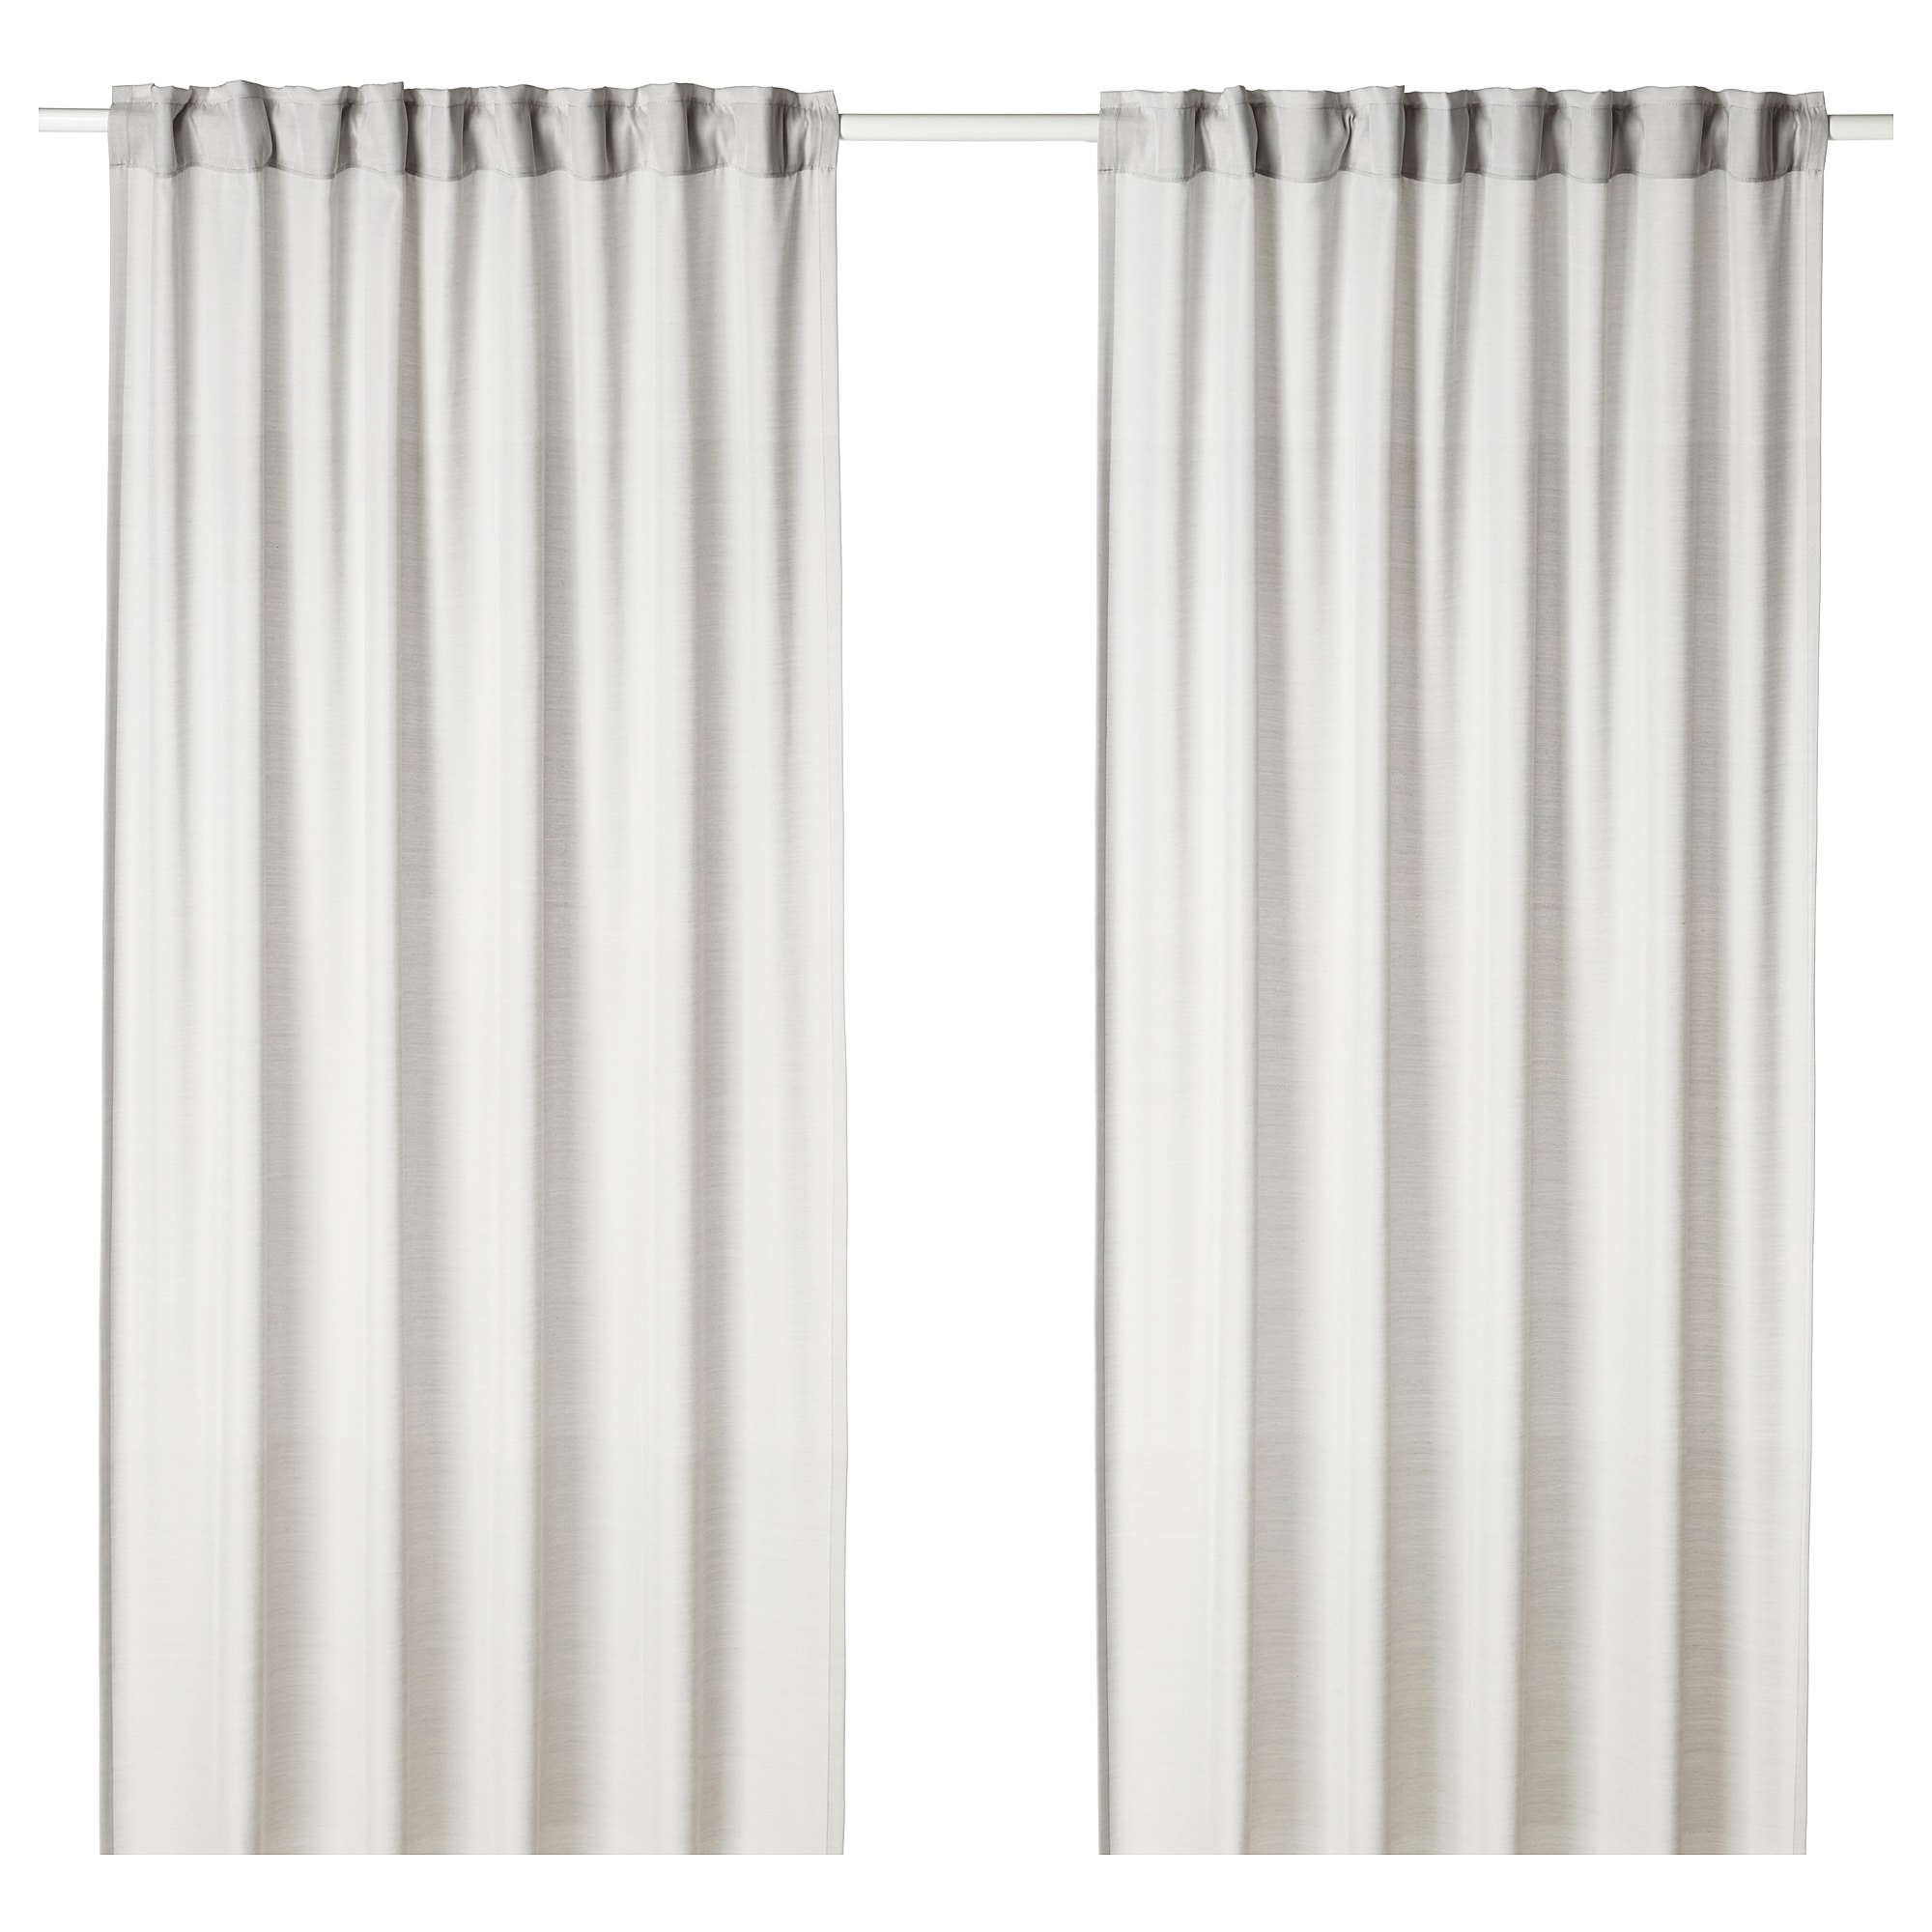 Curtains Blinds Panel and Window Curtains